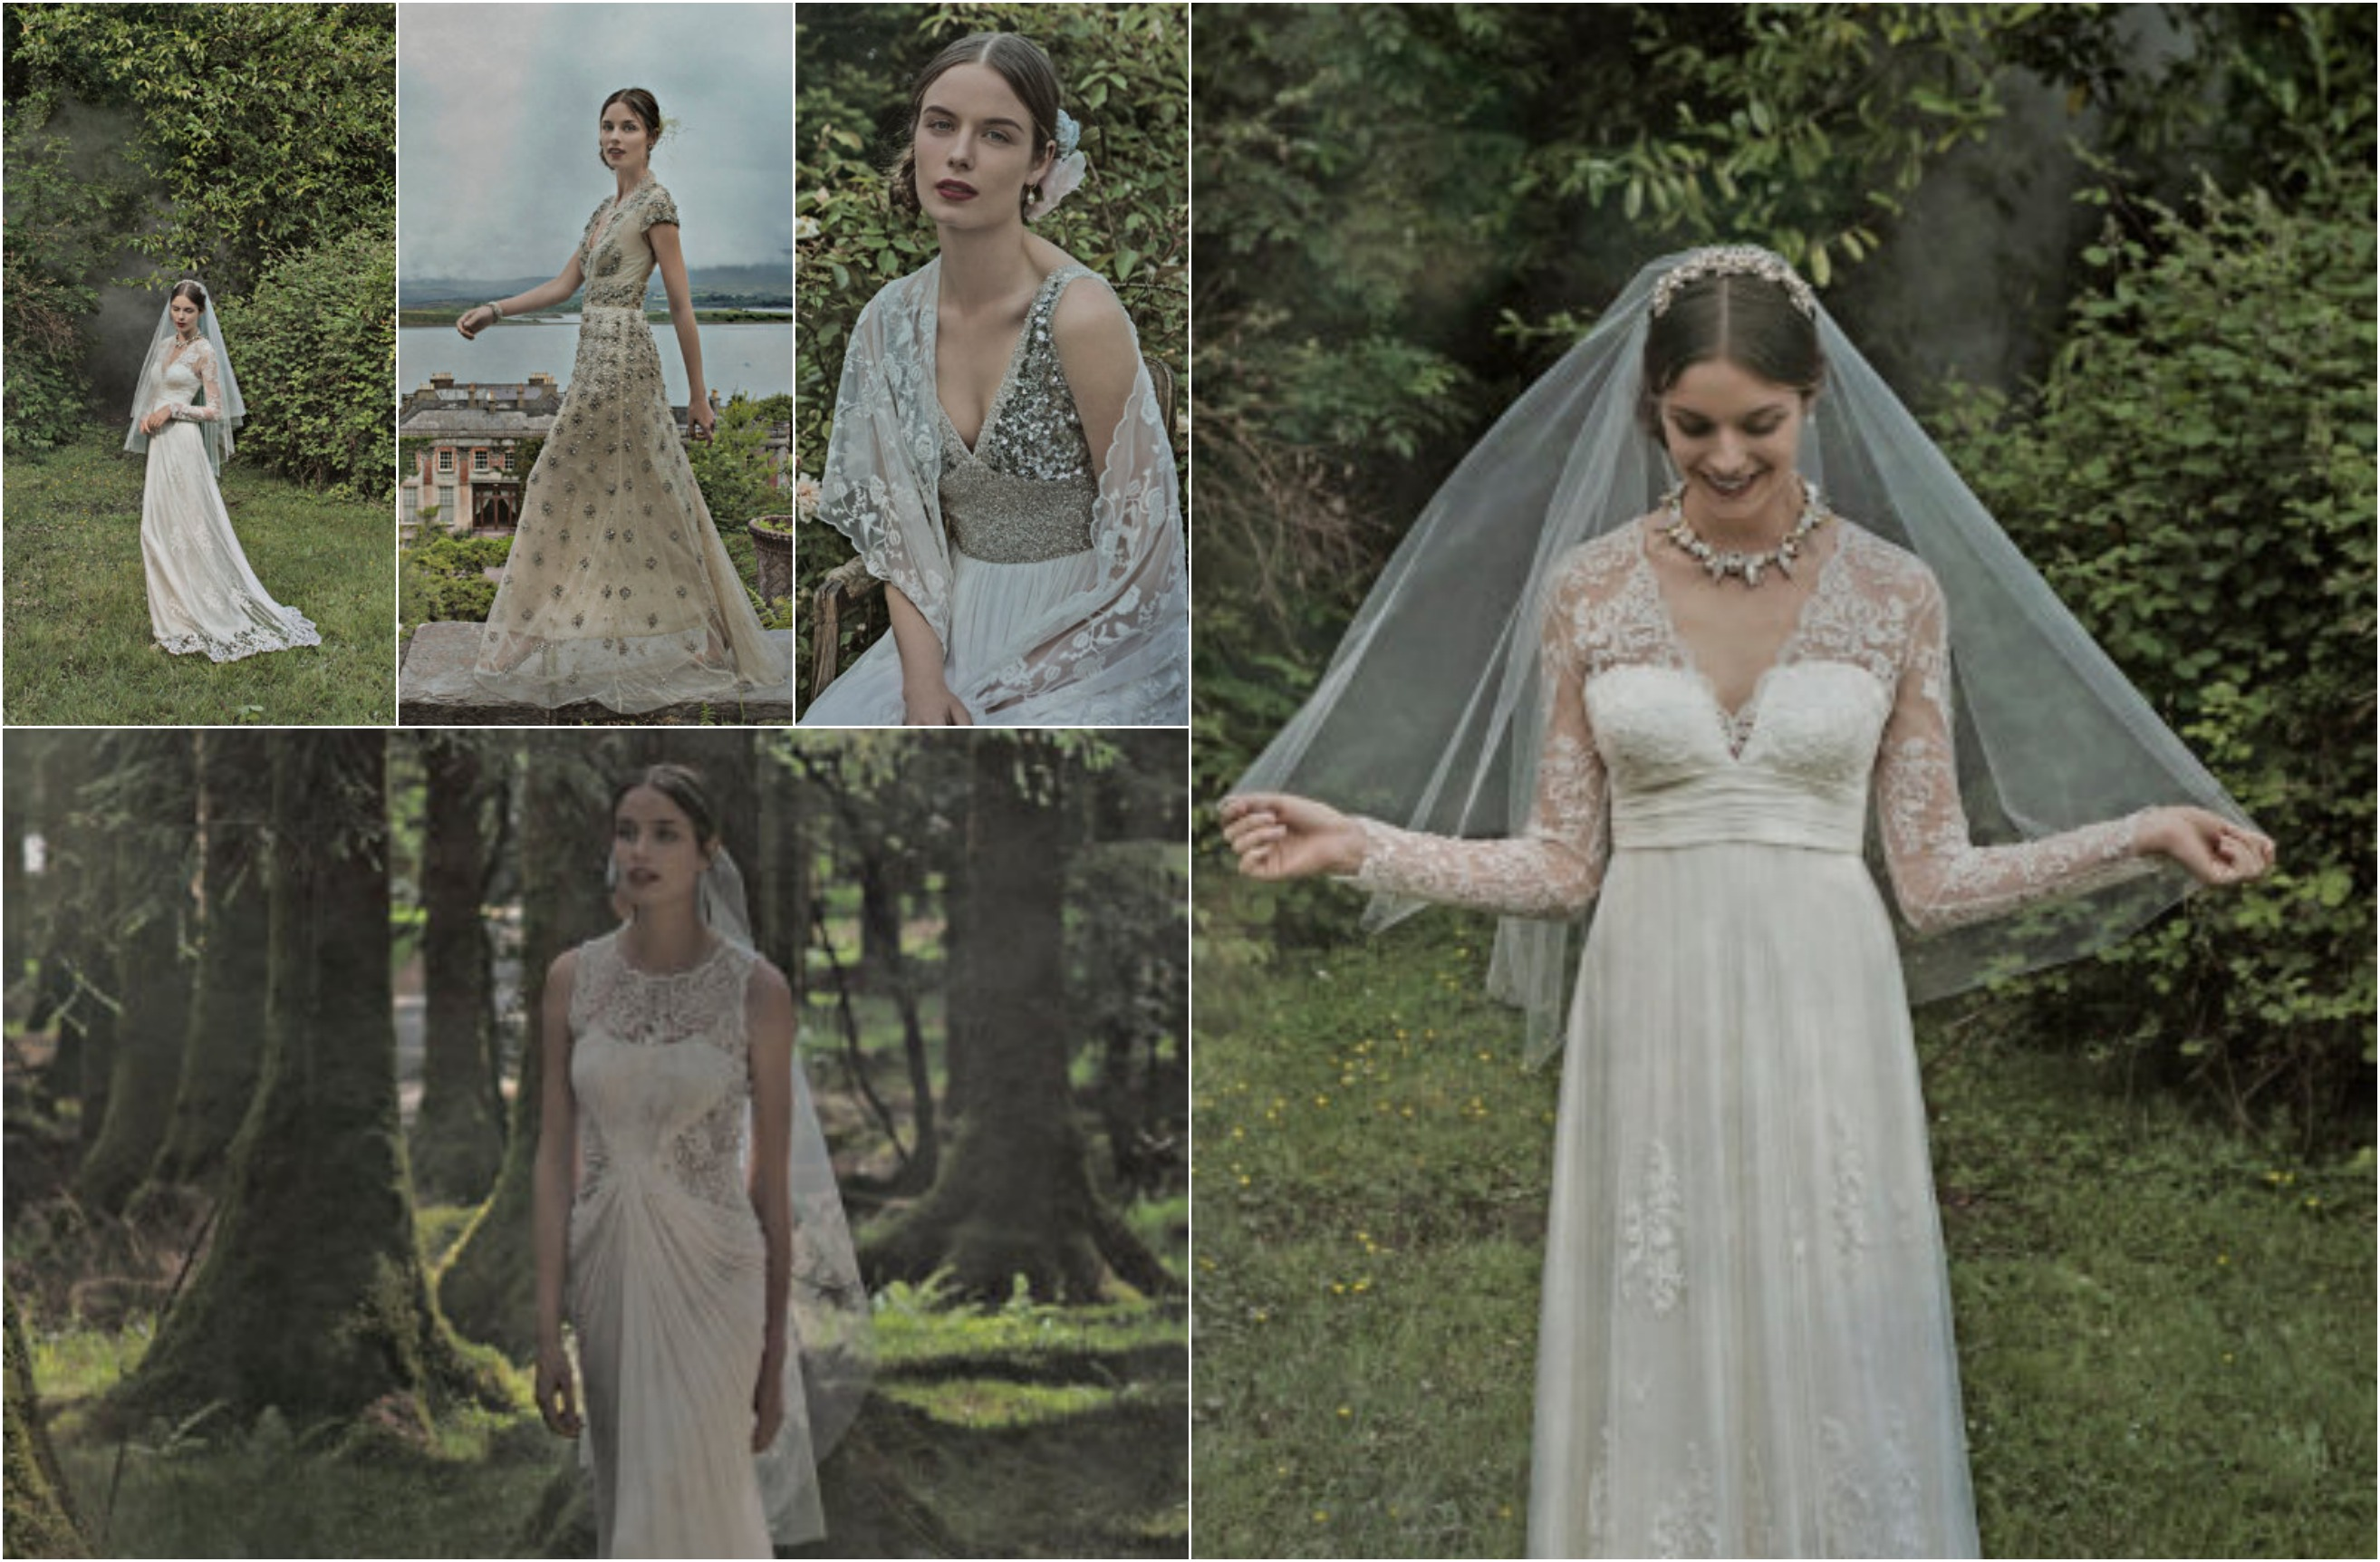 Wedding Dresses For Fall Wedding In The Woods BHLDN Fall Wedding Gowns